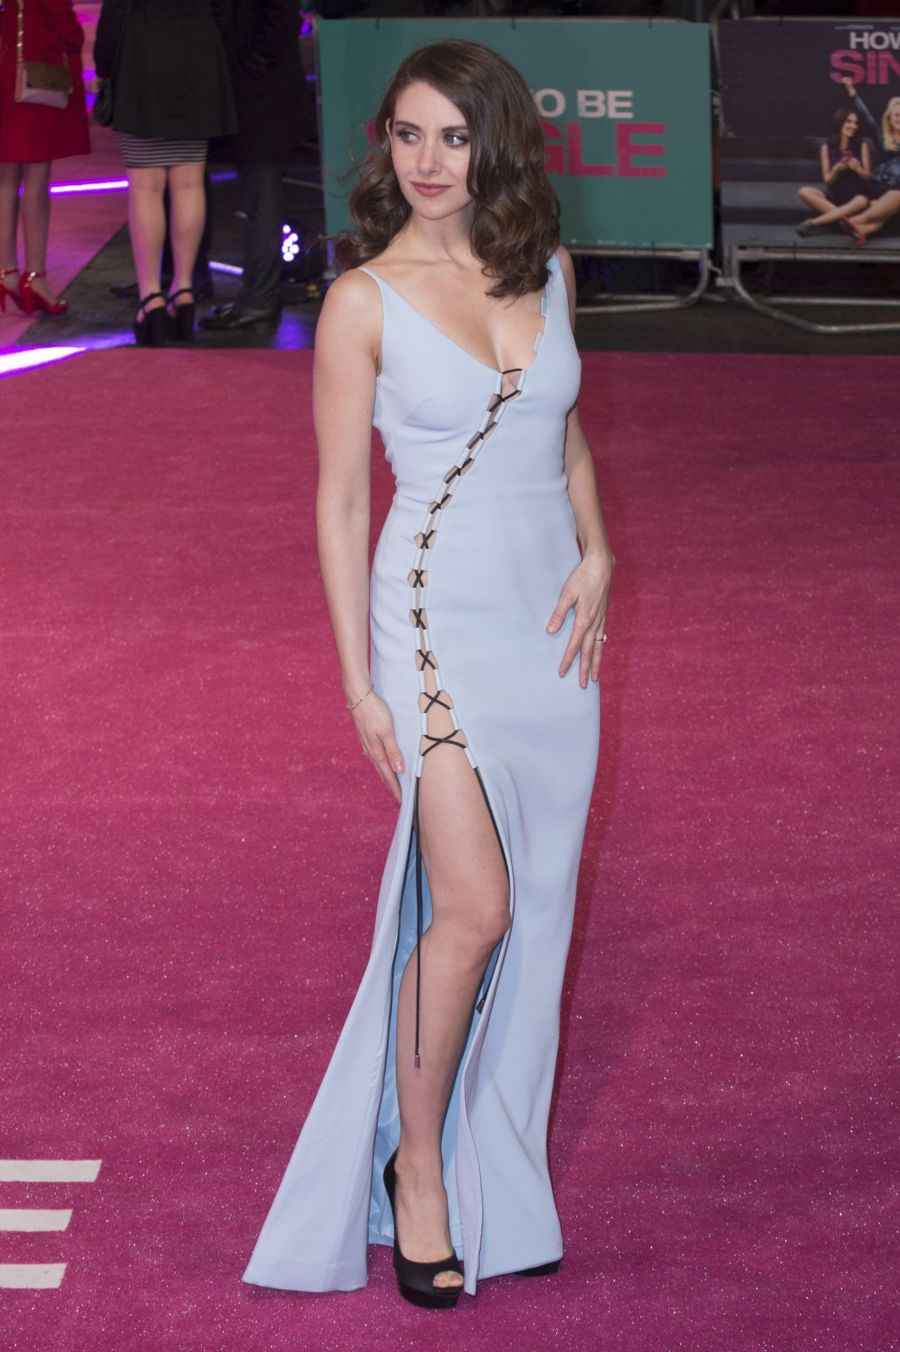 Alison brie how to be single premiere in london ccuart Choice Image